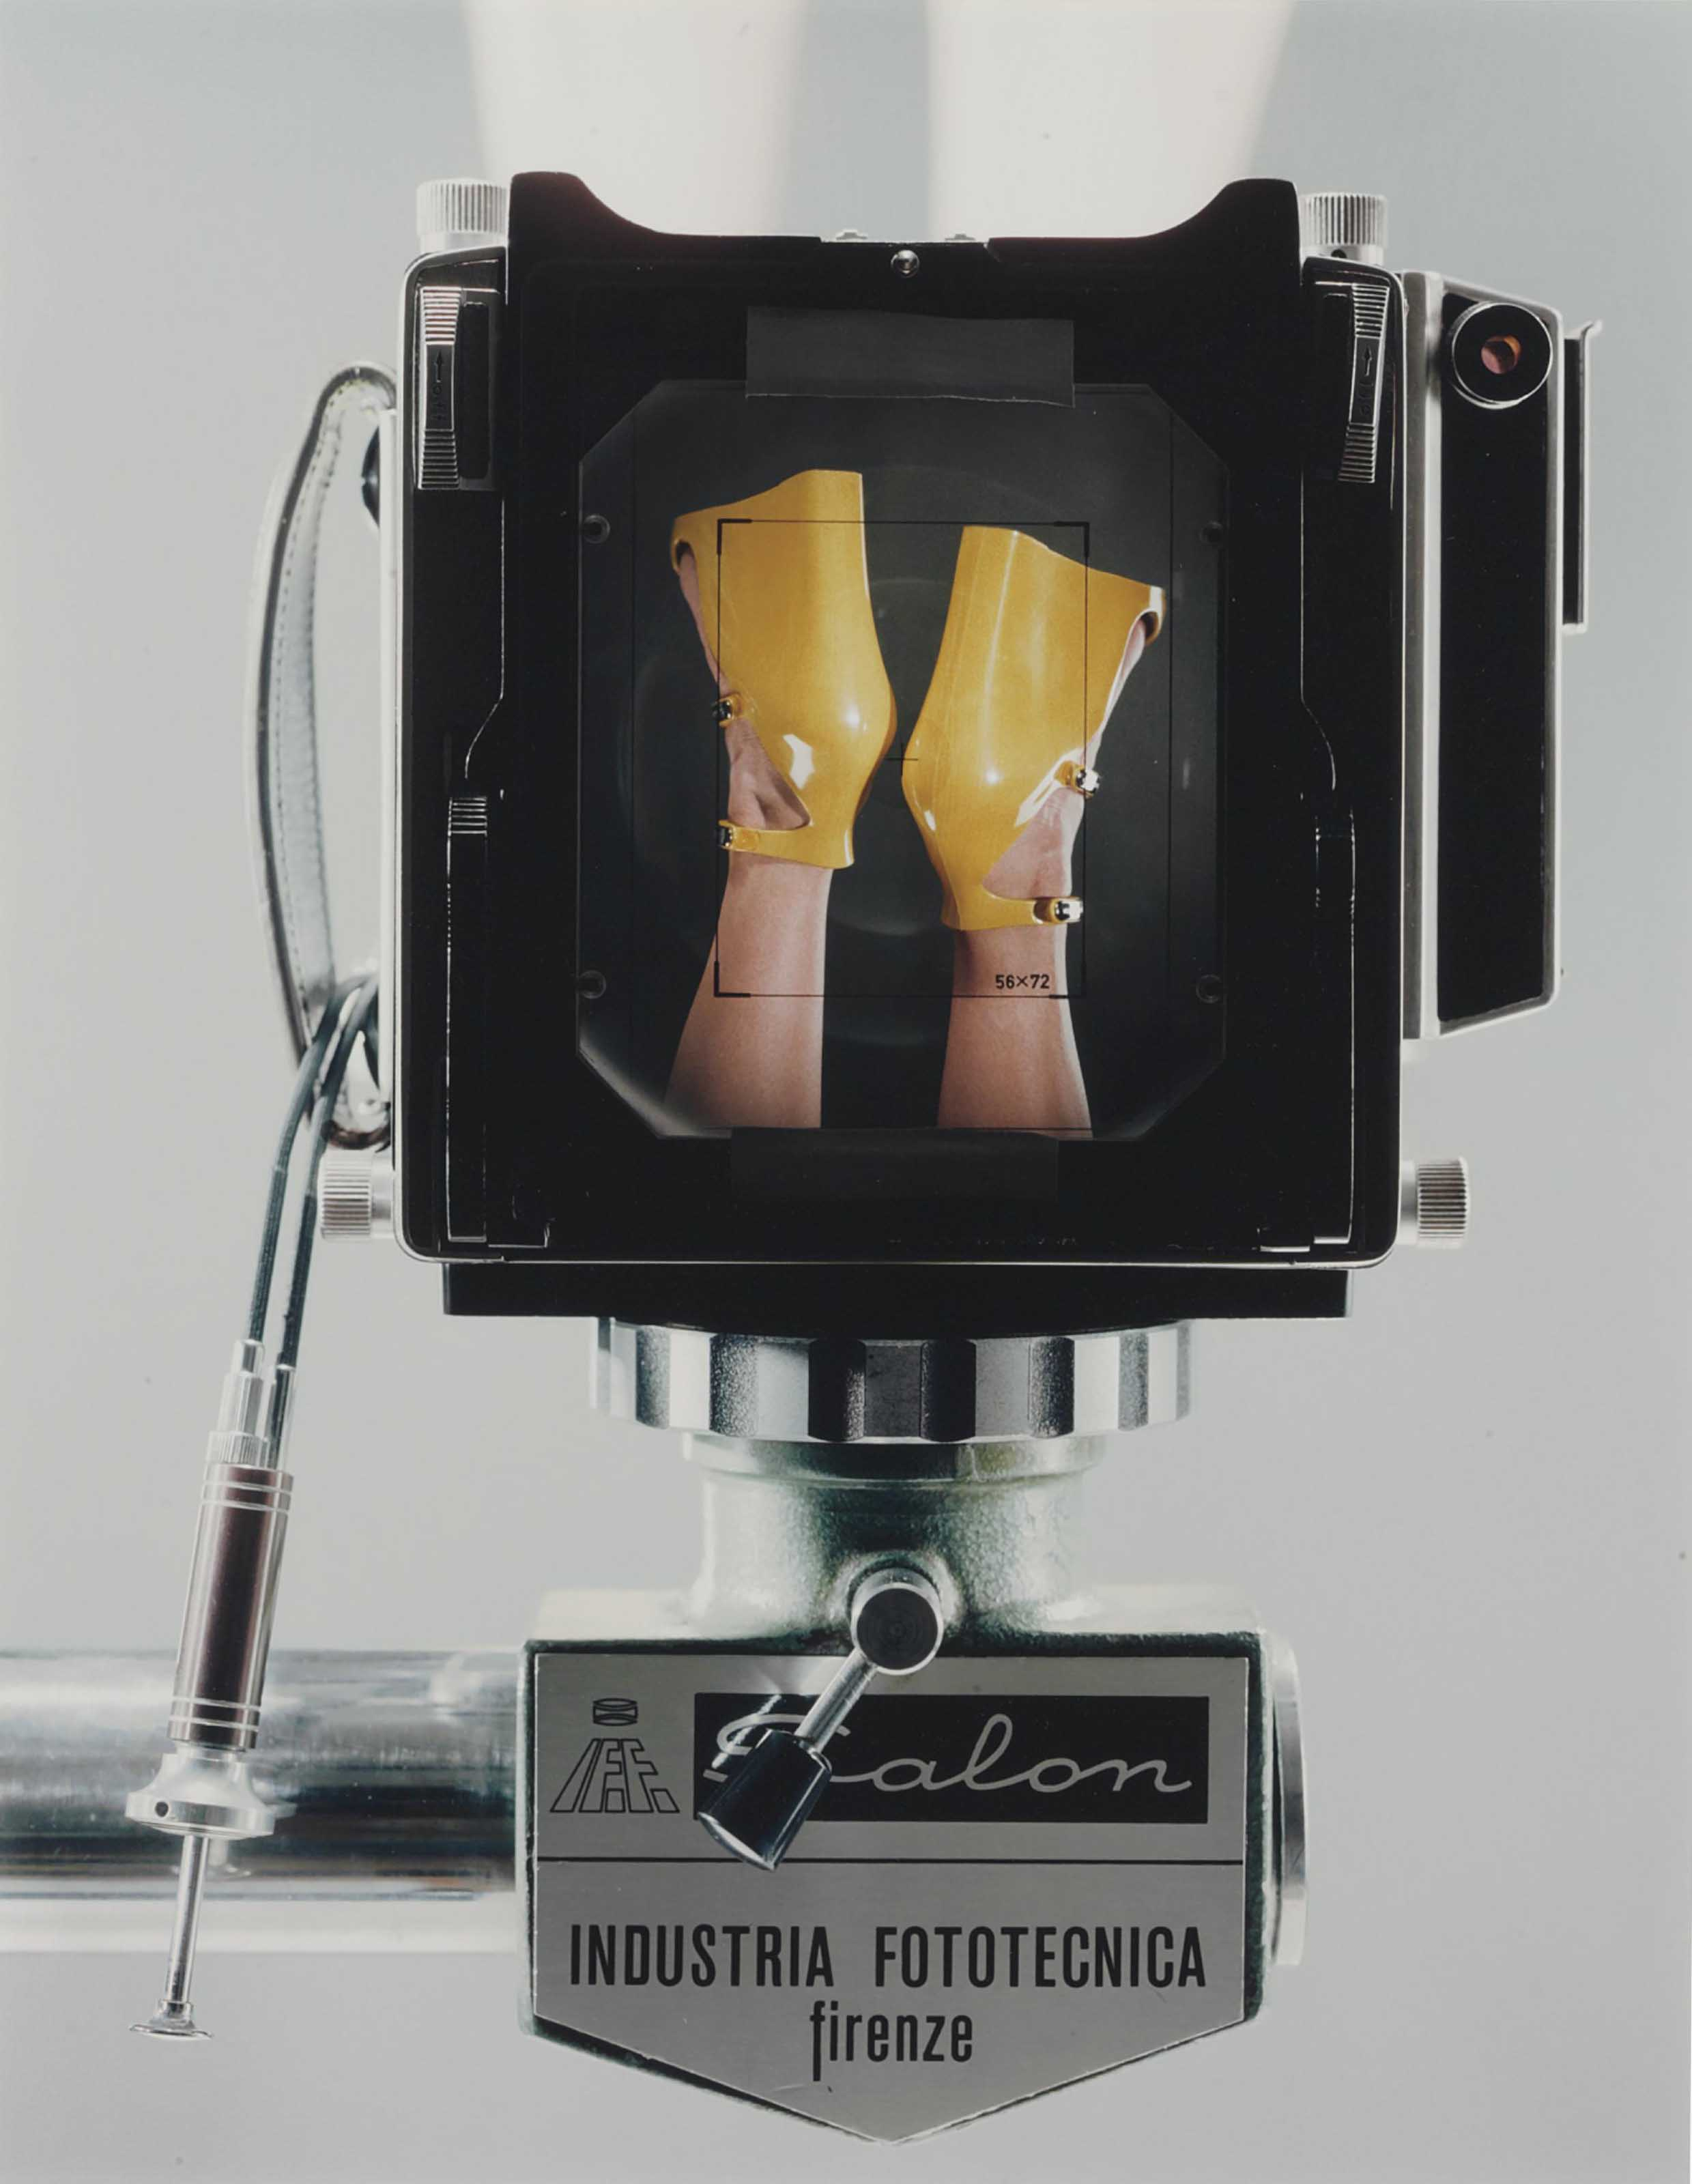 Linhof Technika V fabricated in Munich, Germany. Salon Studio Stand fabricated in Florence, Italy. Dual cable release. Prontor shutter. Symar-s lens 150mmm/f 5.6 Schneider kreuznach. Sinar fresnel lens placed with black tape on the ground glass.  (Yellow)  Dirk Sharper Studio, Berlin, June 19, 2007